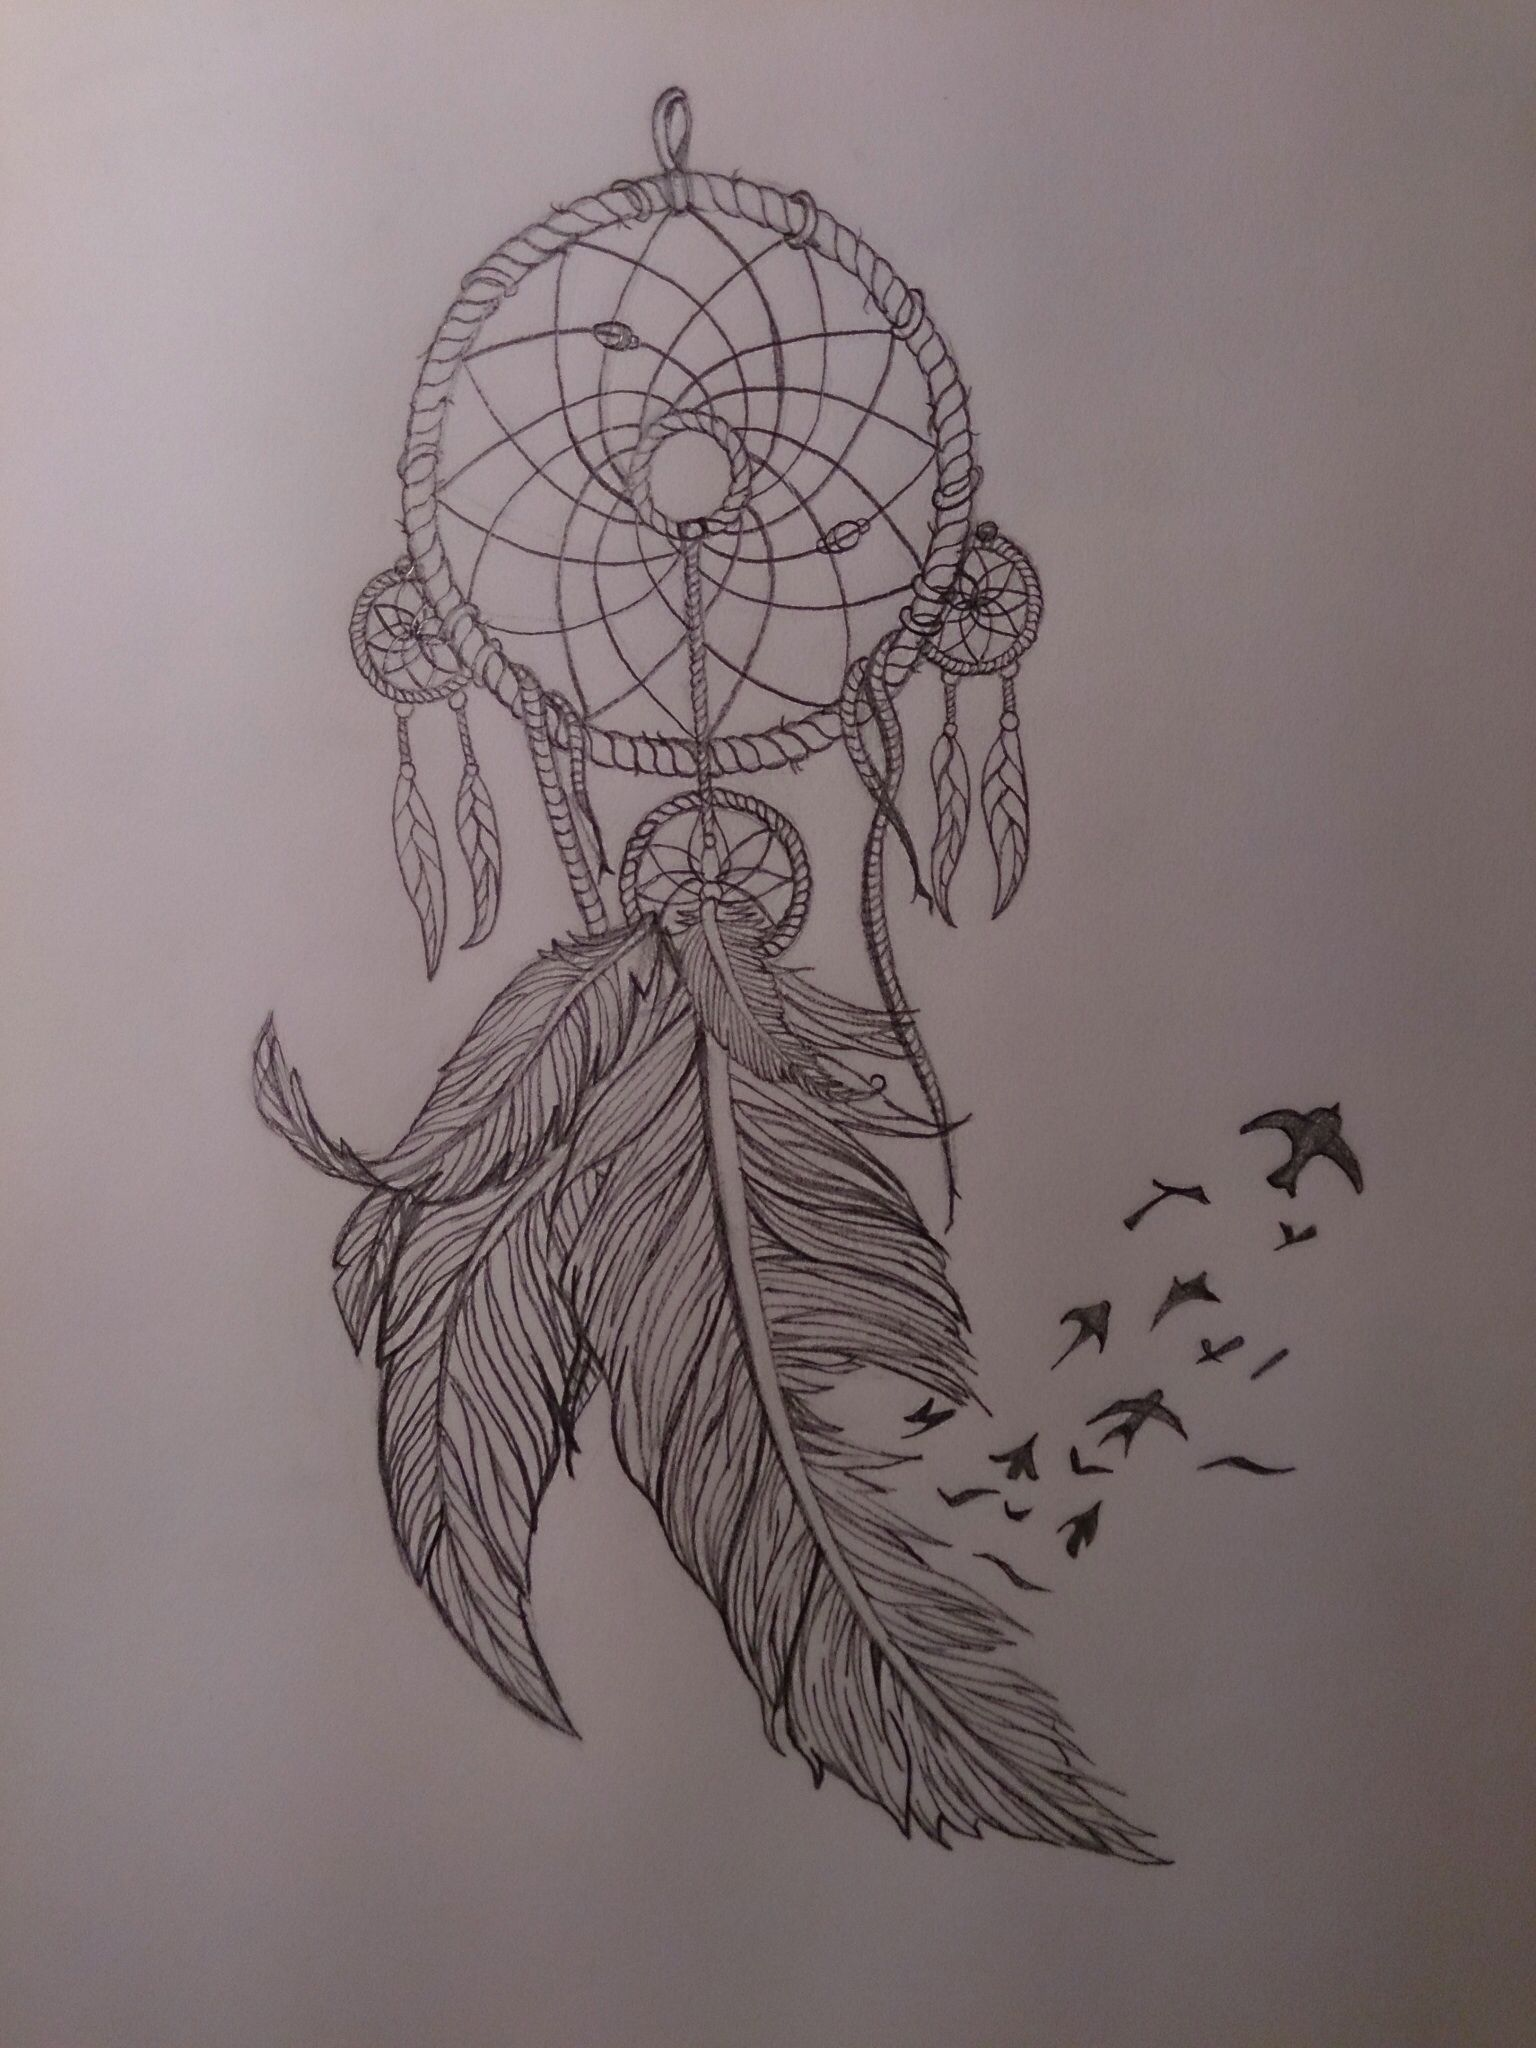 Ideas about bird tattoos on pinterest tattoos - Dream Catcher With Feathers And Birds Thigh Tattoo Design